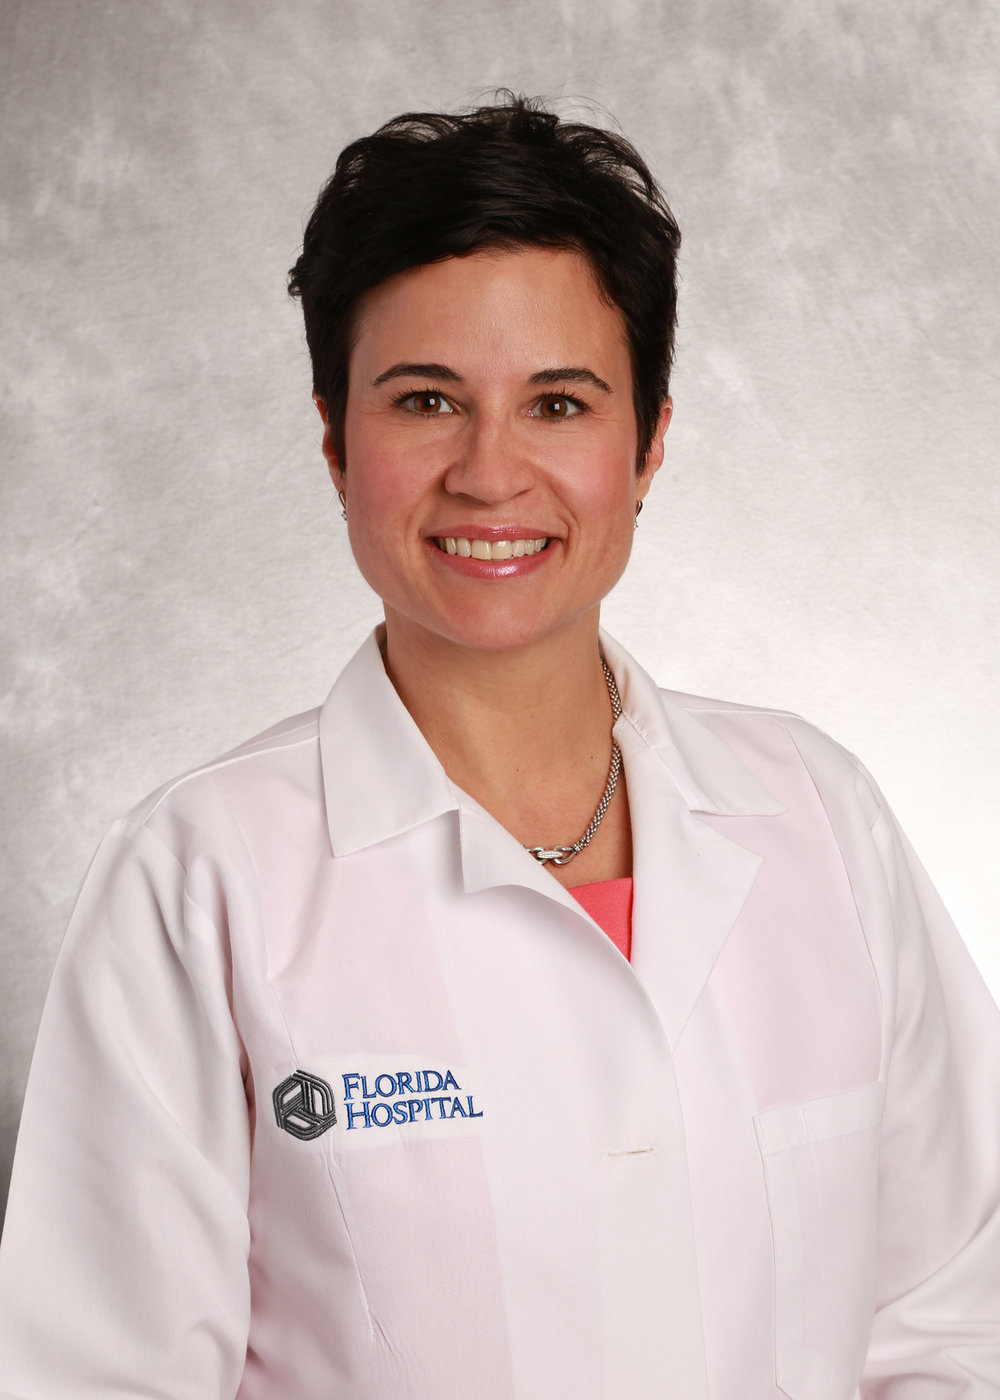 Nicole Figueredo, MD - Dr. Nicole Figueredo is a board-certified and fellowship-trained breast surgeon with 15 years of experience providing surgical care for patients with malignant and non-malignant breast diseases. She is proud to offer her expertise to patients in the Tampa metro area and beyond, and has direct access to the operating facilities of both Florida Hospital Wesley Chapel and Florida Hospital Carrollwood.Dr. Figueredo joined Florida Hospital Physician Group from Voorhees, New Jersey, where she was affiliated with Summit Surgical Center and Virtua Health for multiple years. Prior to that time, she was a Teaching Fellow at the Warren Alpert Medical School of Brown University – considered one of the most prestigious programs of its kind. She is a Fellow of the American College of Surgeons and a member of the American Society of Breast Surgeons, and she has previously served on the medical advisory board for the Philadelphia affiliate of Susan G. Komen for the Cure. She is fluent in English and Spanish.